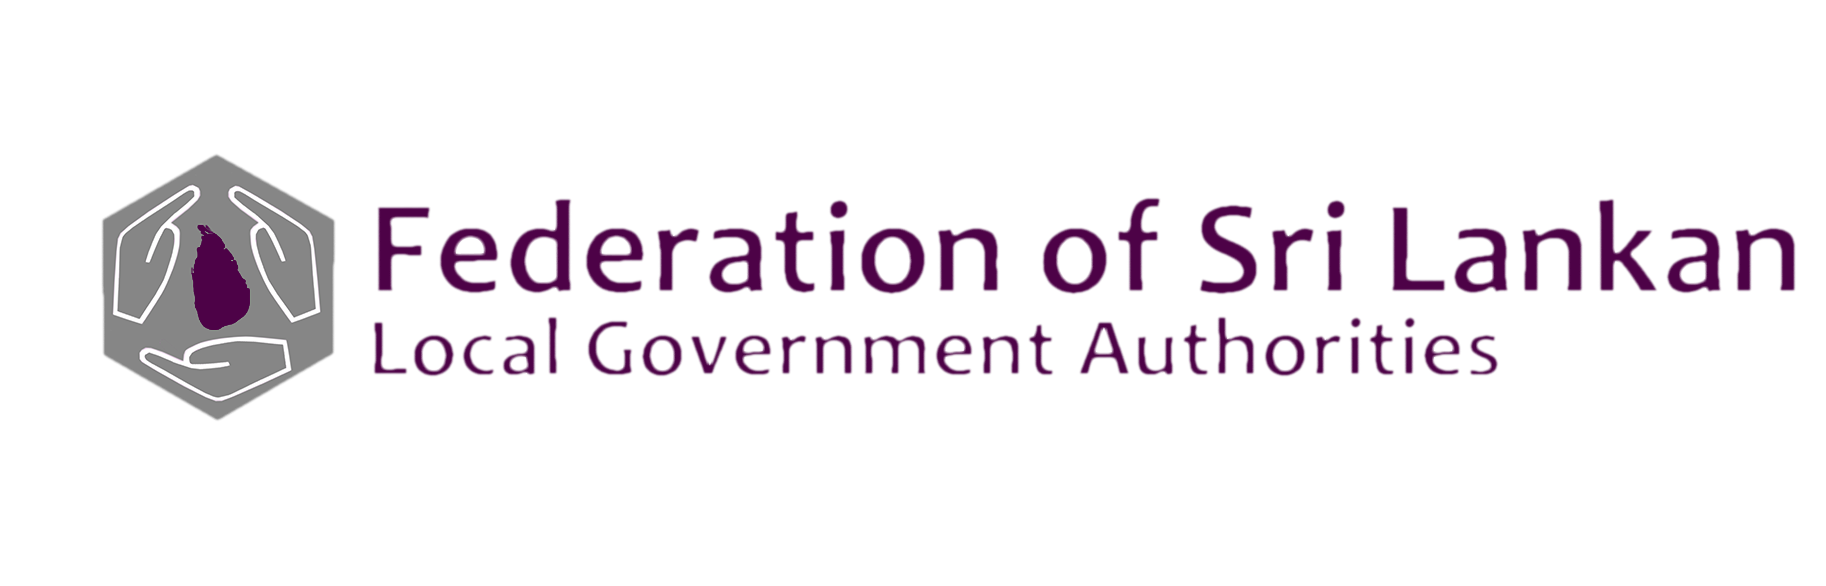 Federation of Sri Lankan Local Government Authorities